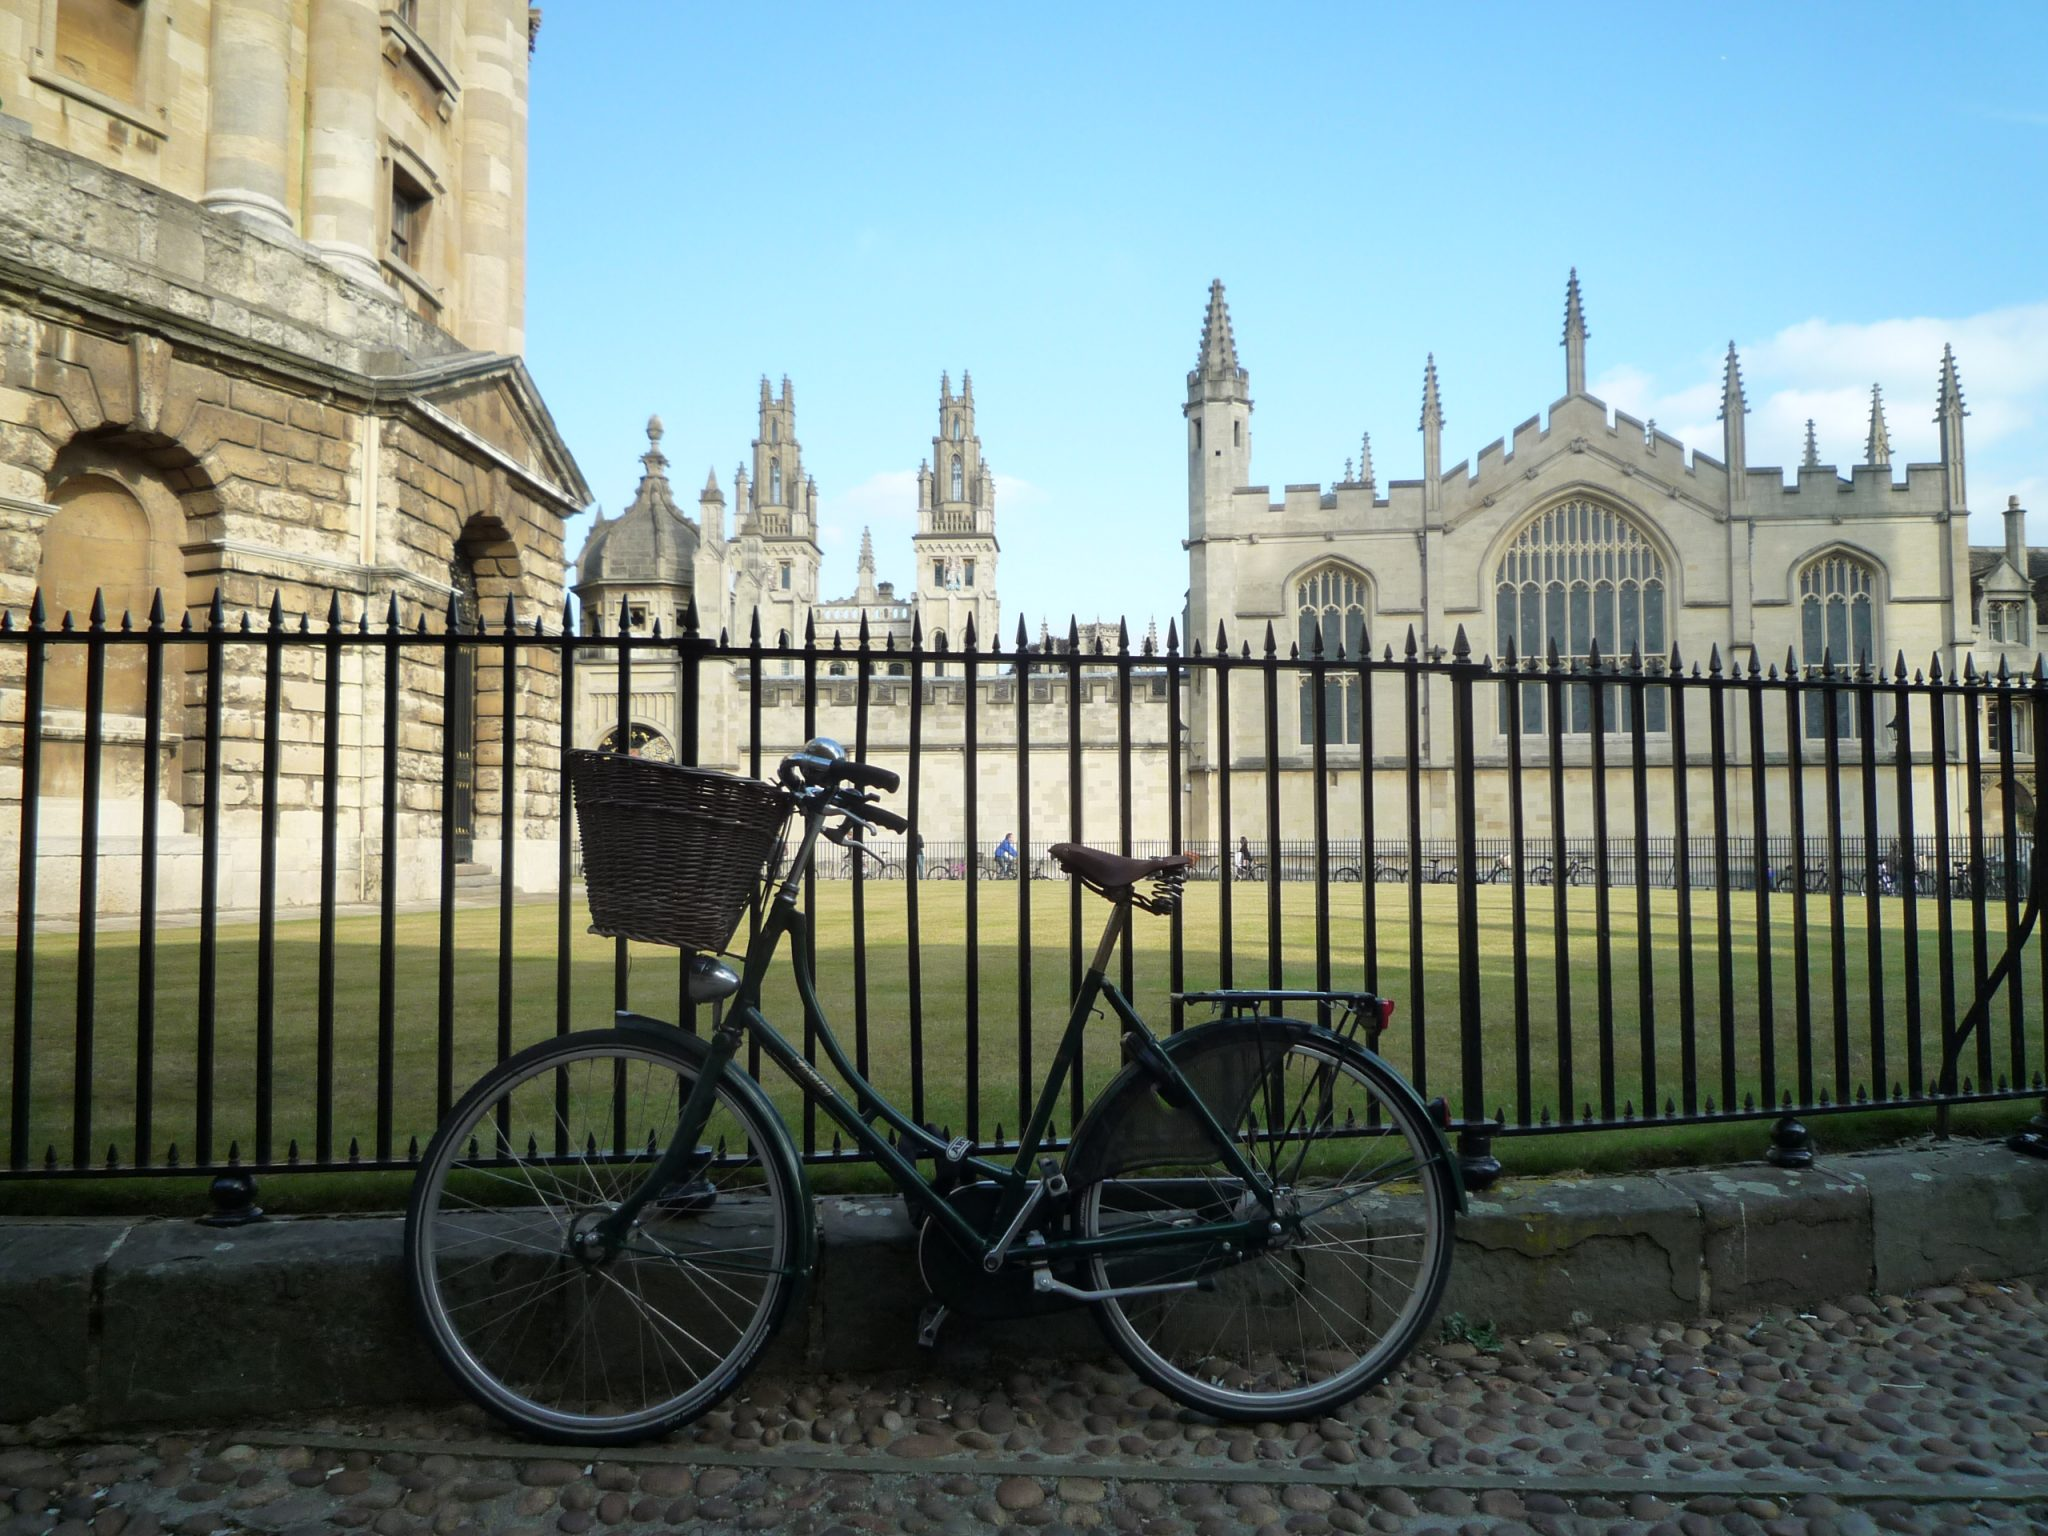 Oxford has come first in the THE World Rankings, but we shouldn't get carried away